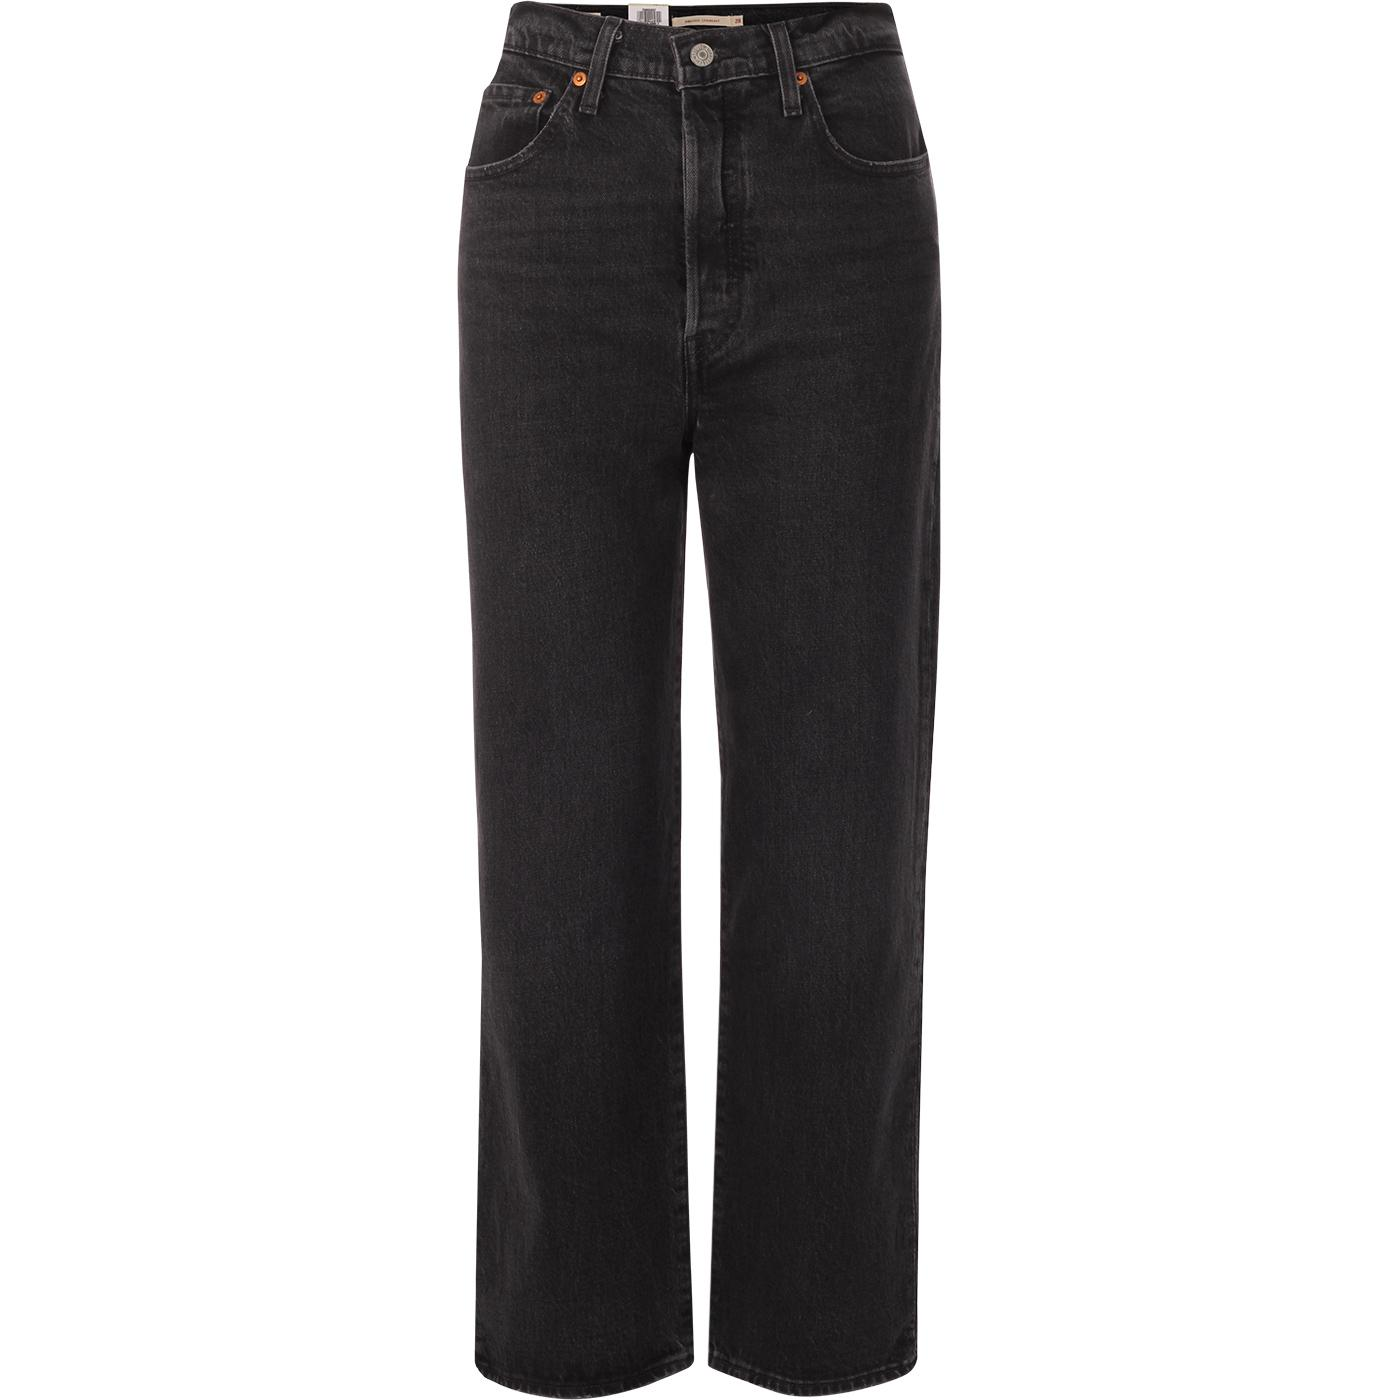 LEVI'S Ribcage Straight Ankle Jeans (Feelin Cagey)